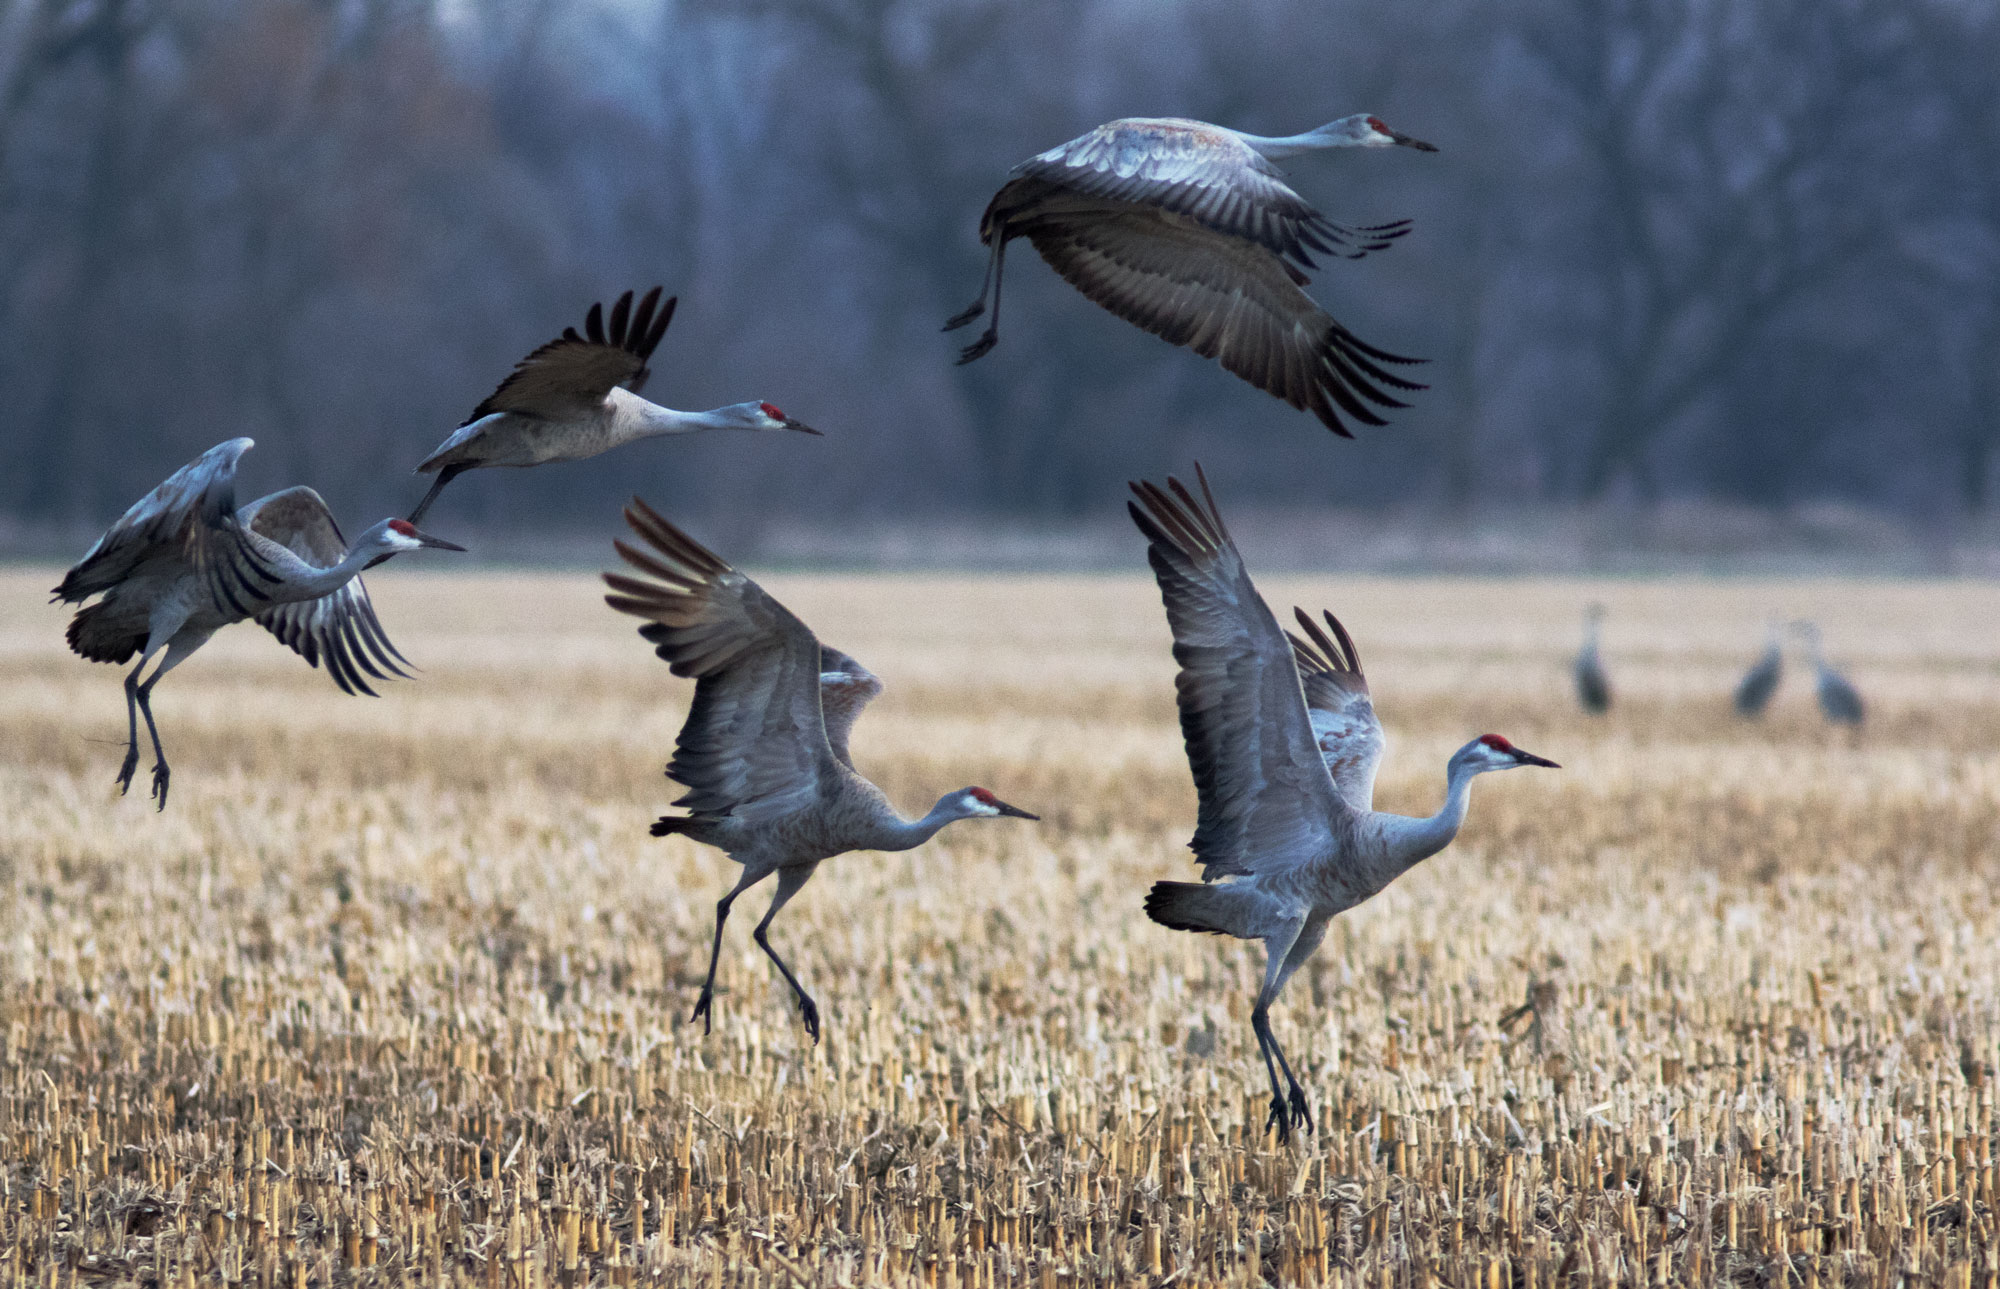 Sandhill Cranes on the Platte River, Nebraska